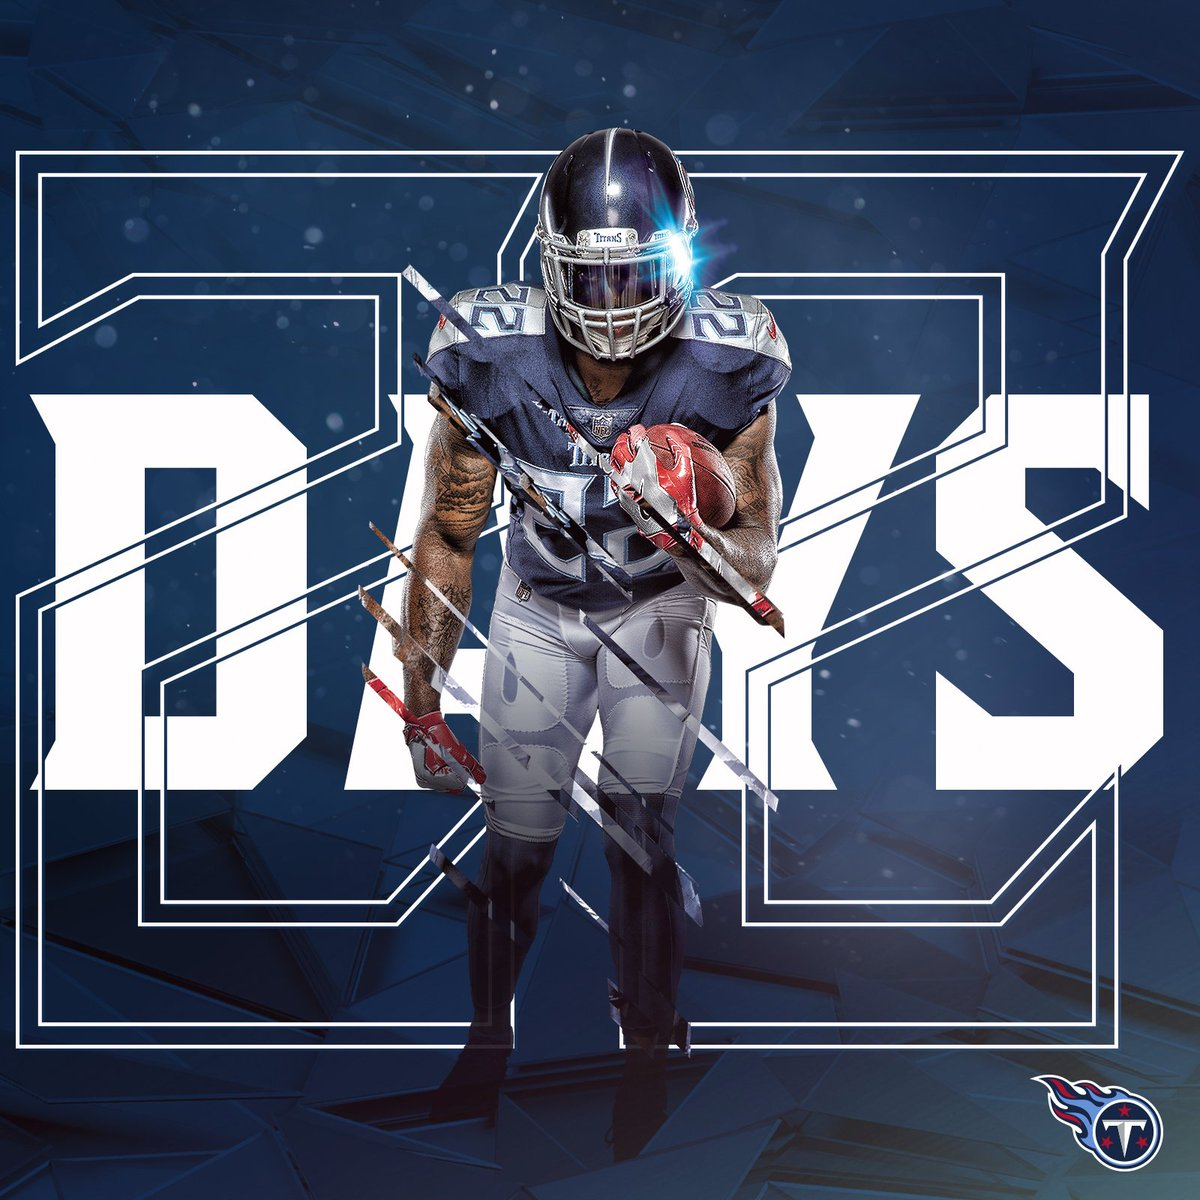 We're @KingHenry_2 days away from the season opener. 🚜 #TitanUp